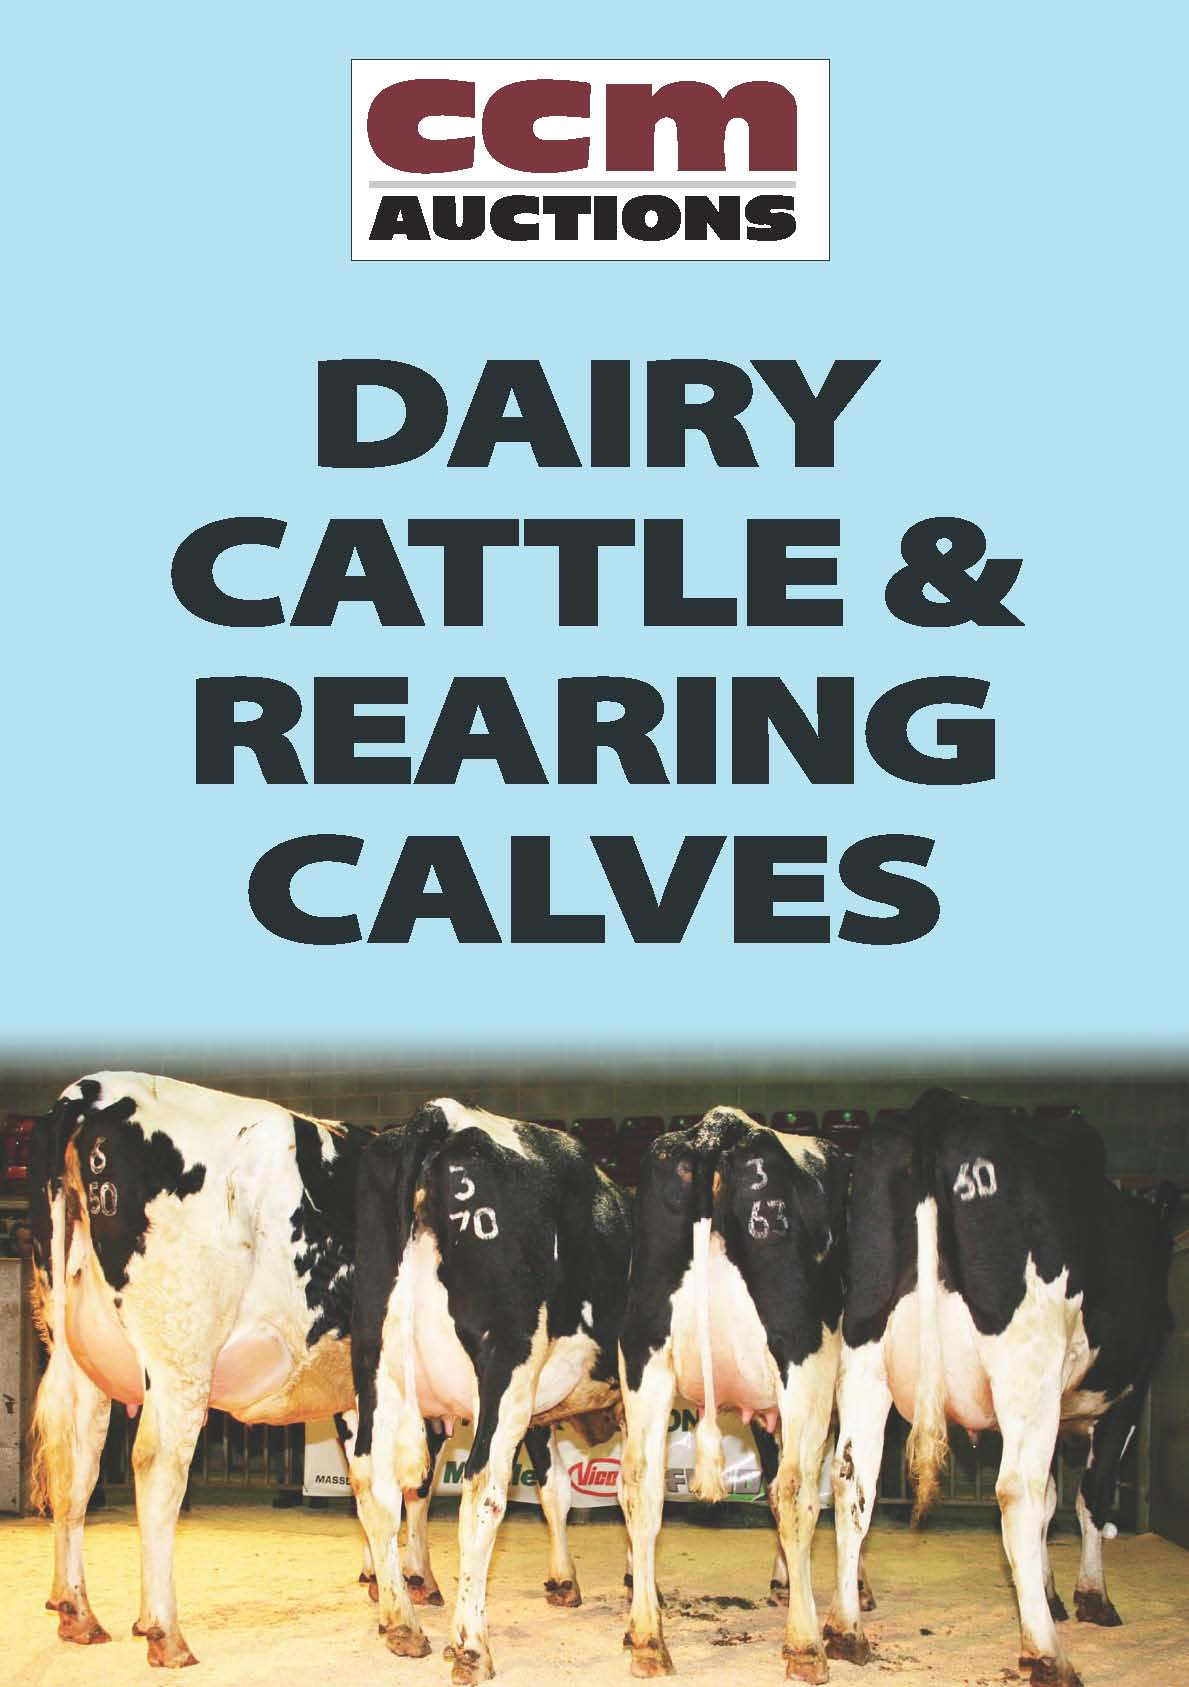 DAIRY & CALVES - MONDAY 29TH FEBRUARY 2016